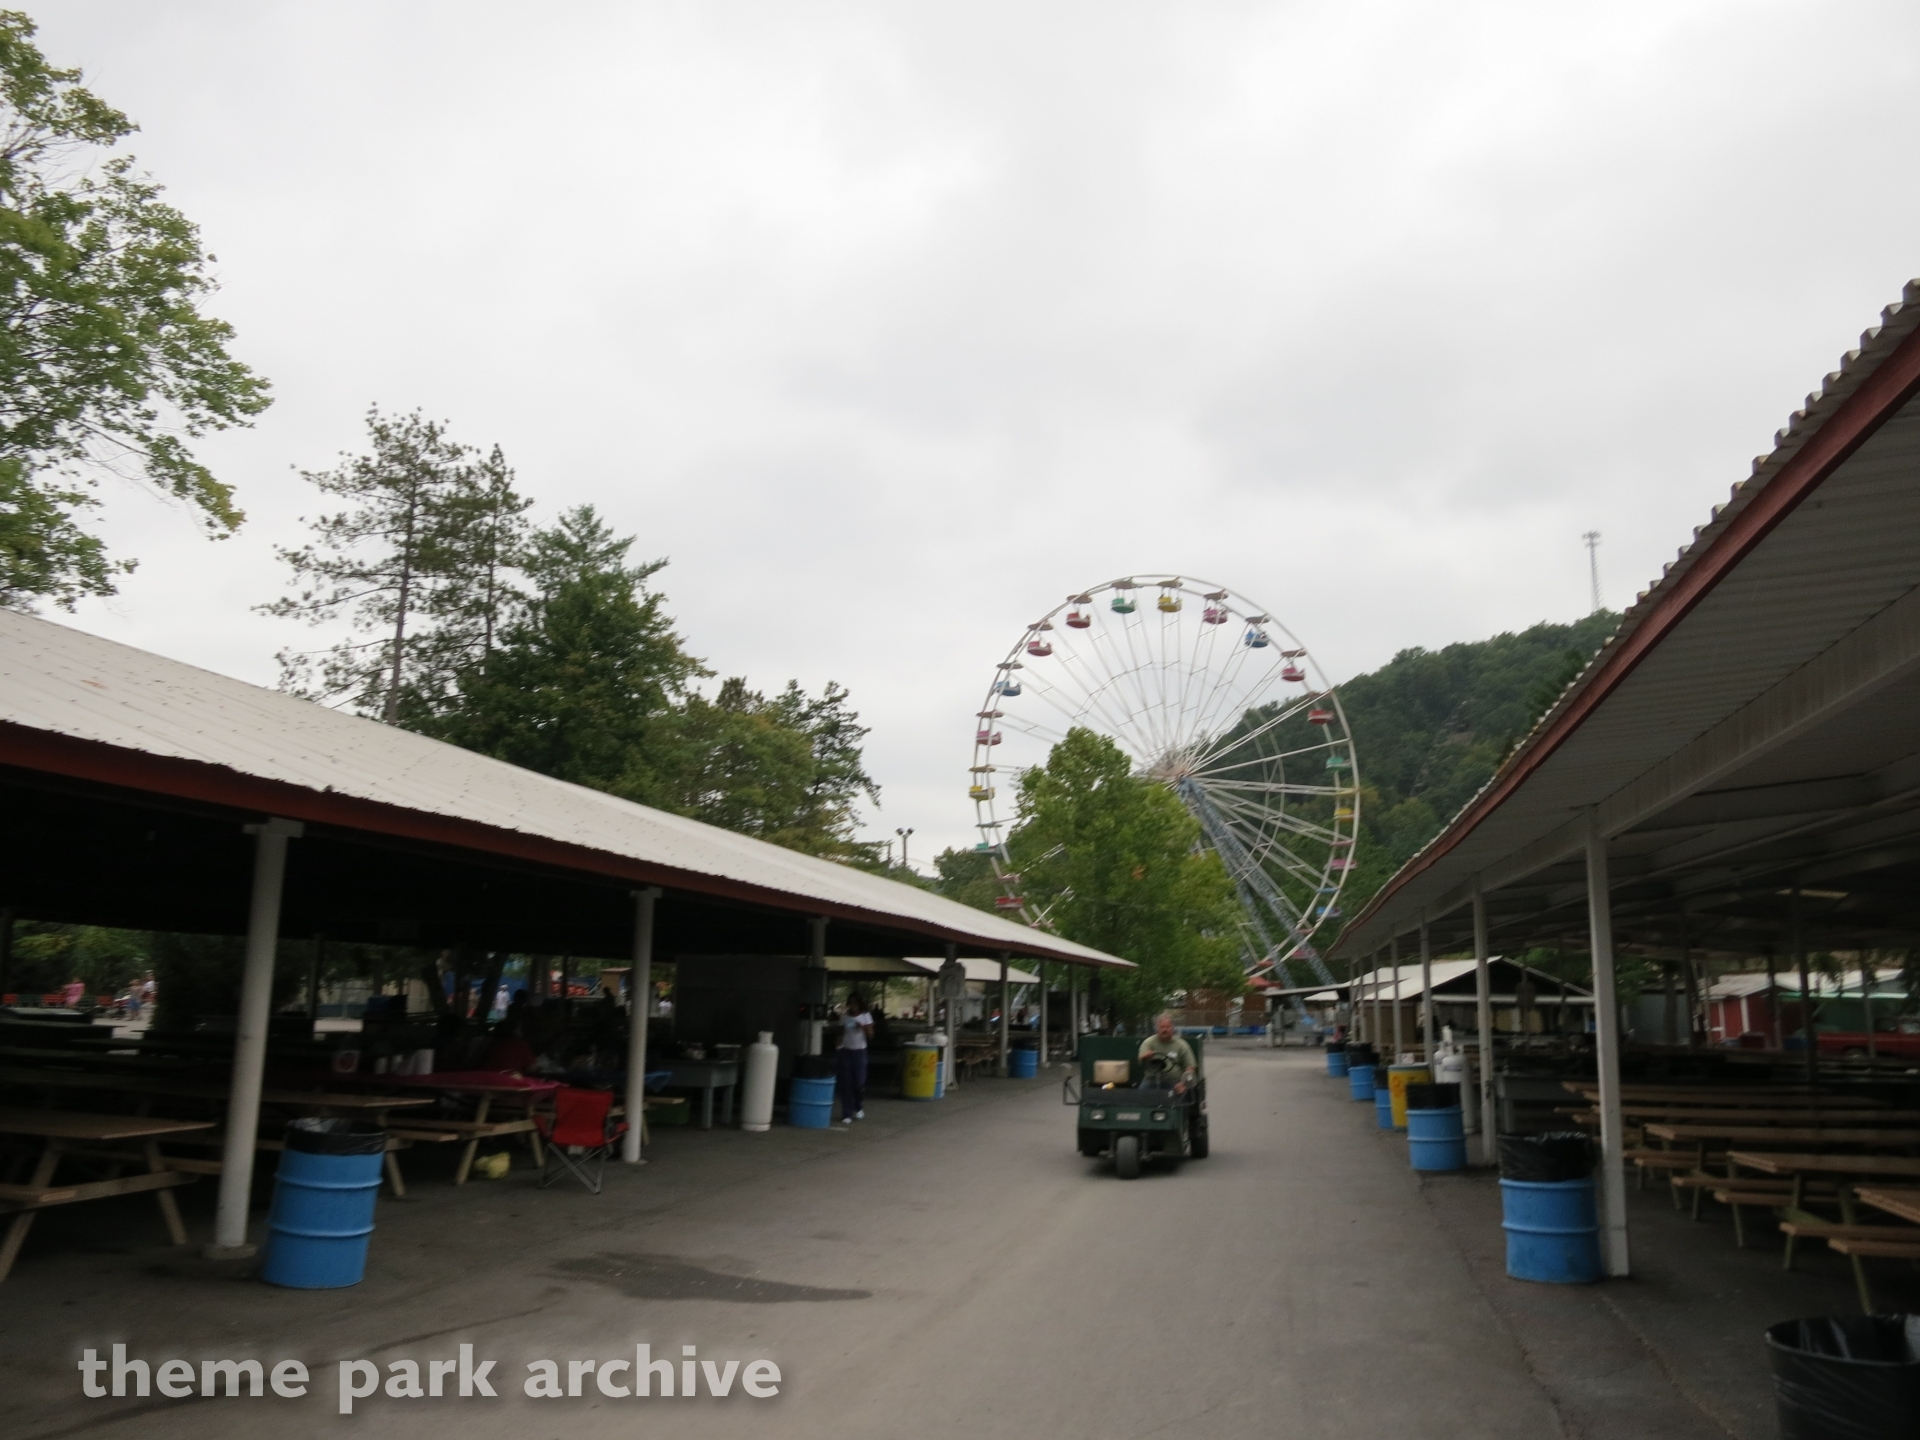 Giant Wheel at Knoebels Amusement Resort